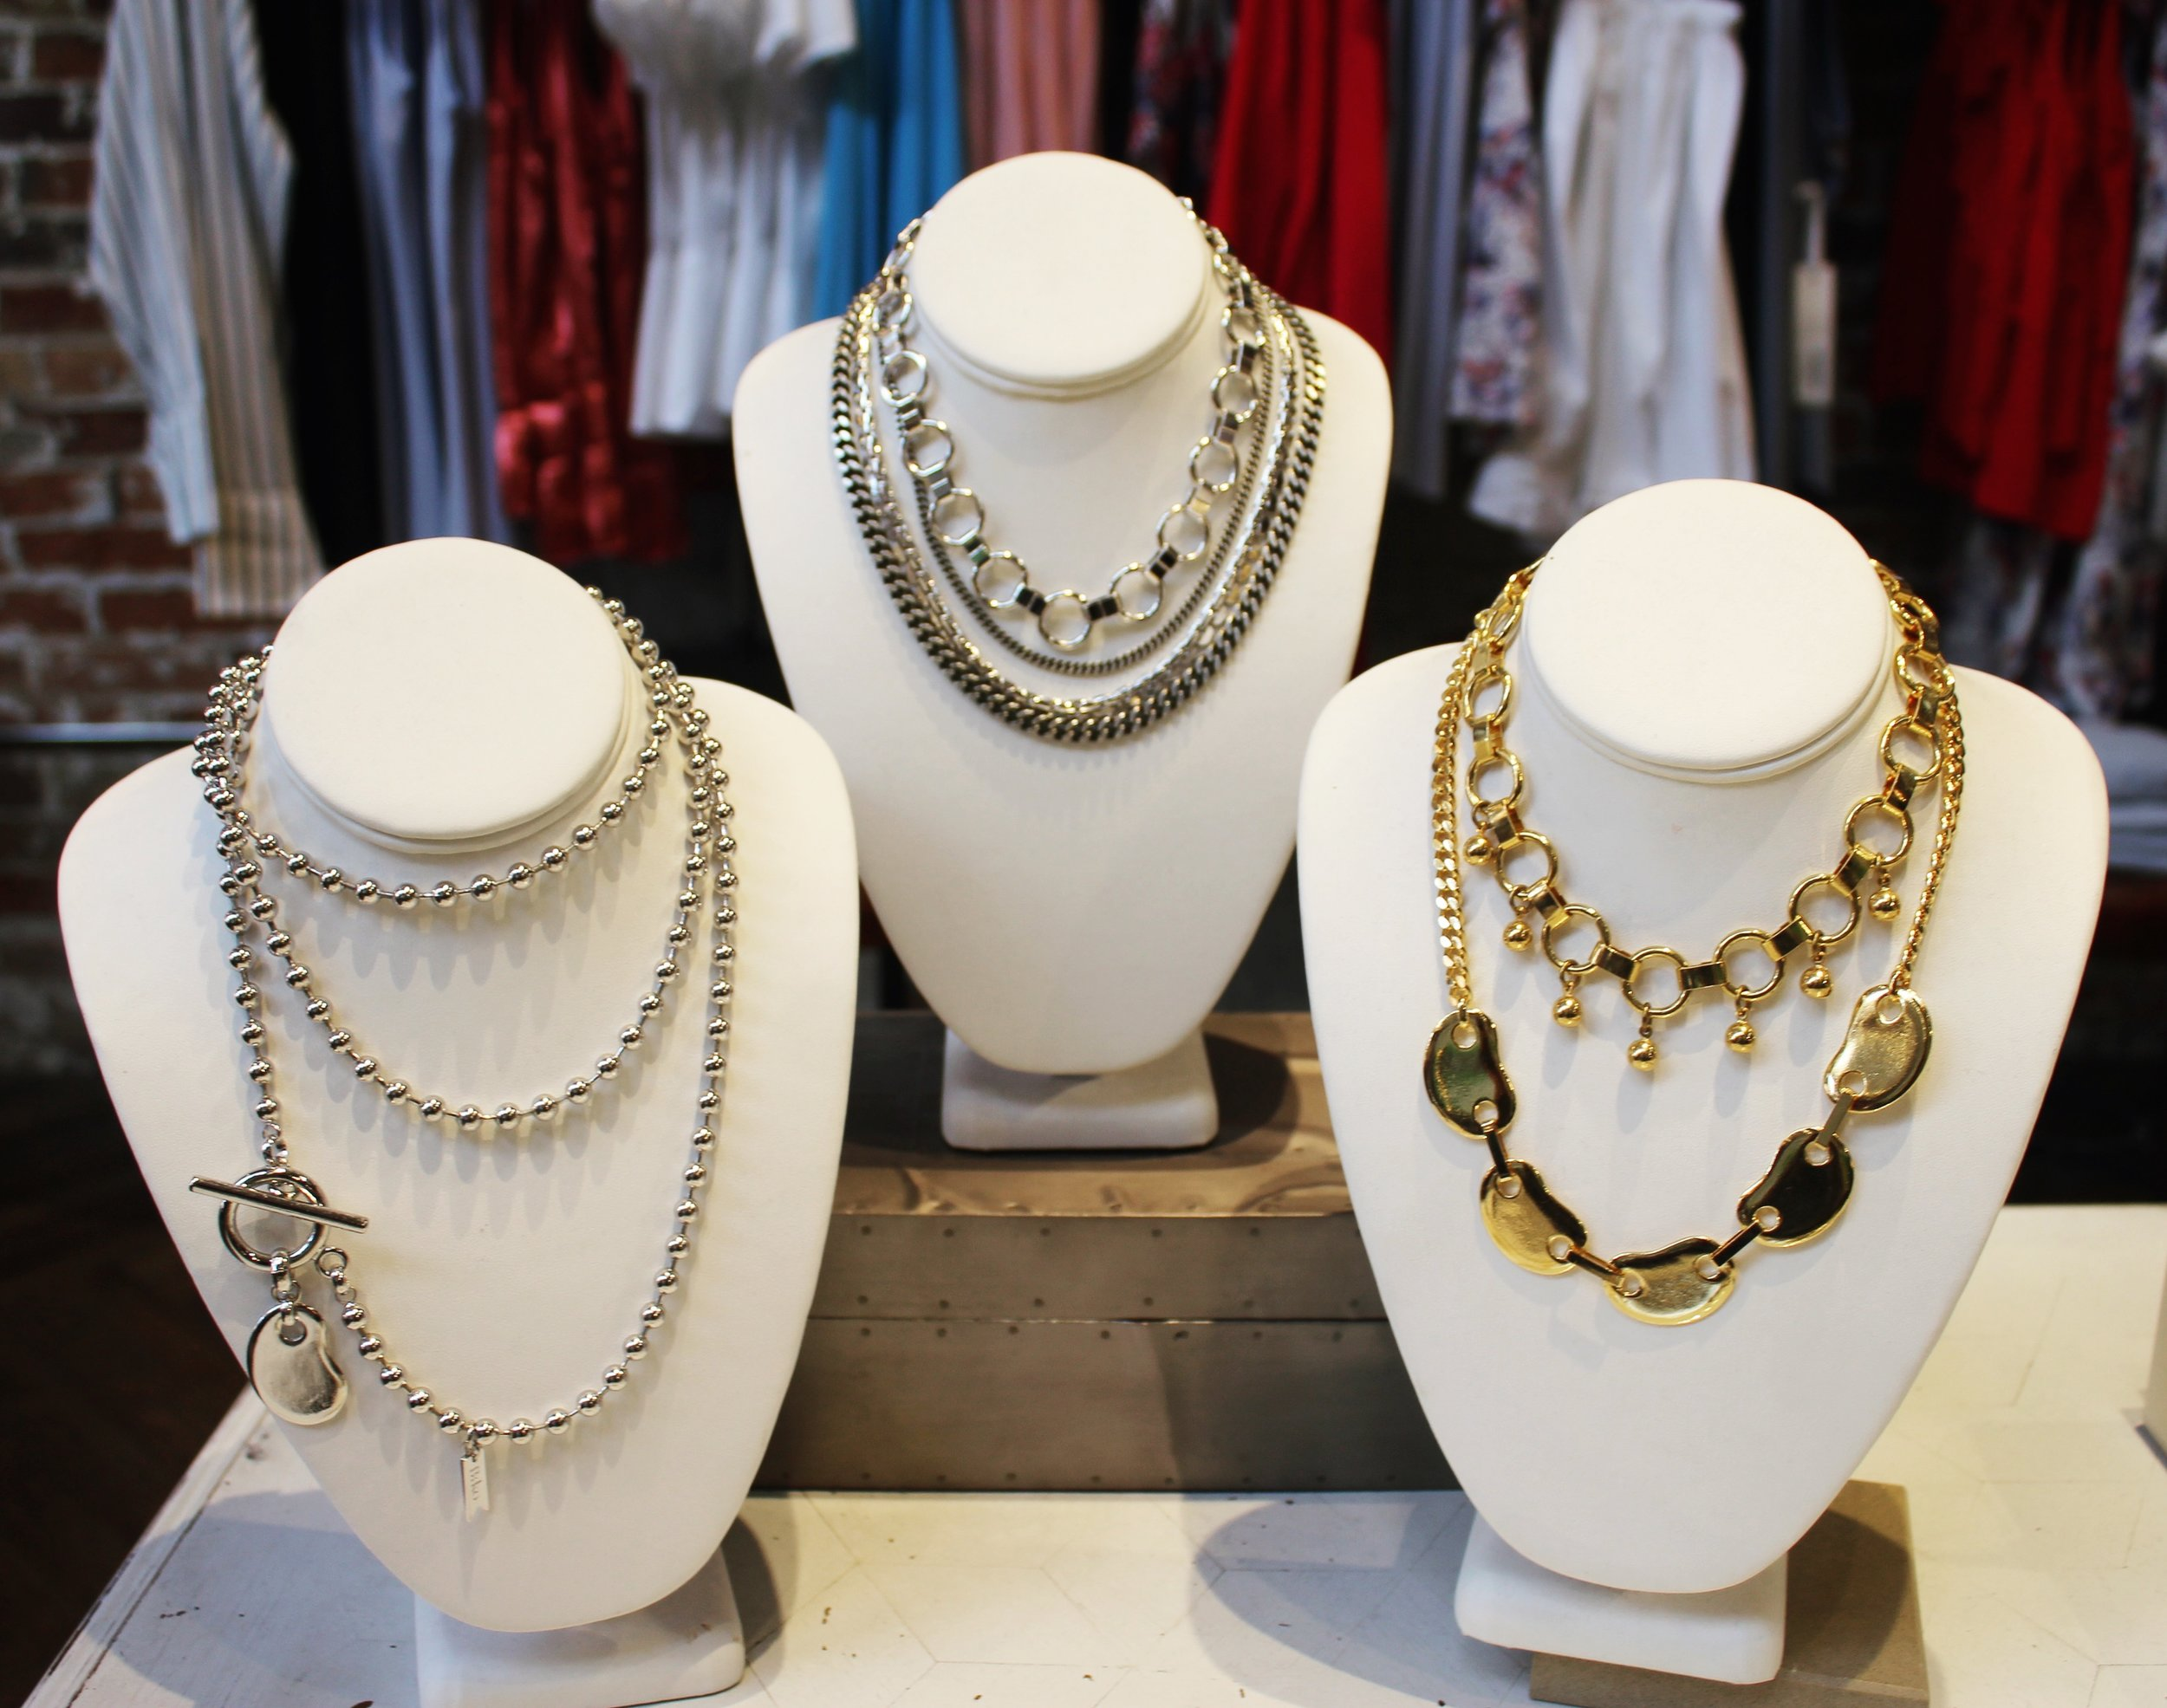 Classy Mom:  Biko accessories have something for everyone!All earrings (other photo) are super light, 14k gold or Rhodium plated with hypo allergenic posts. $65-$110 Same goes for her cool necklaces, they are perfect for layering with any neckline. $100-$150